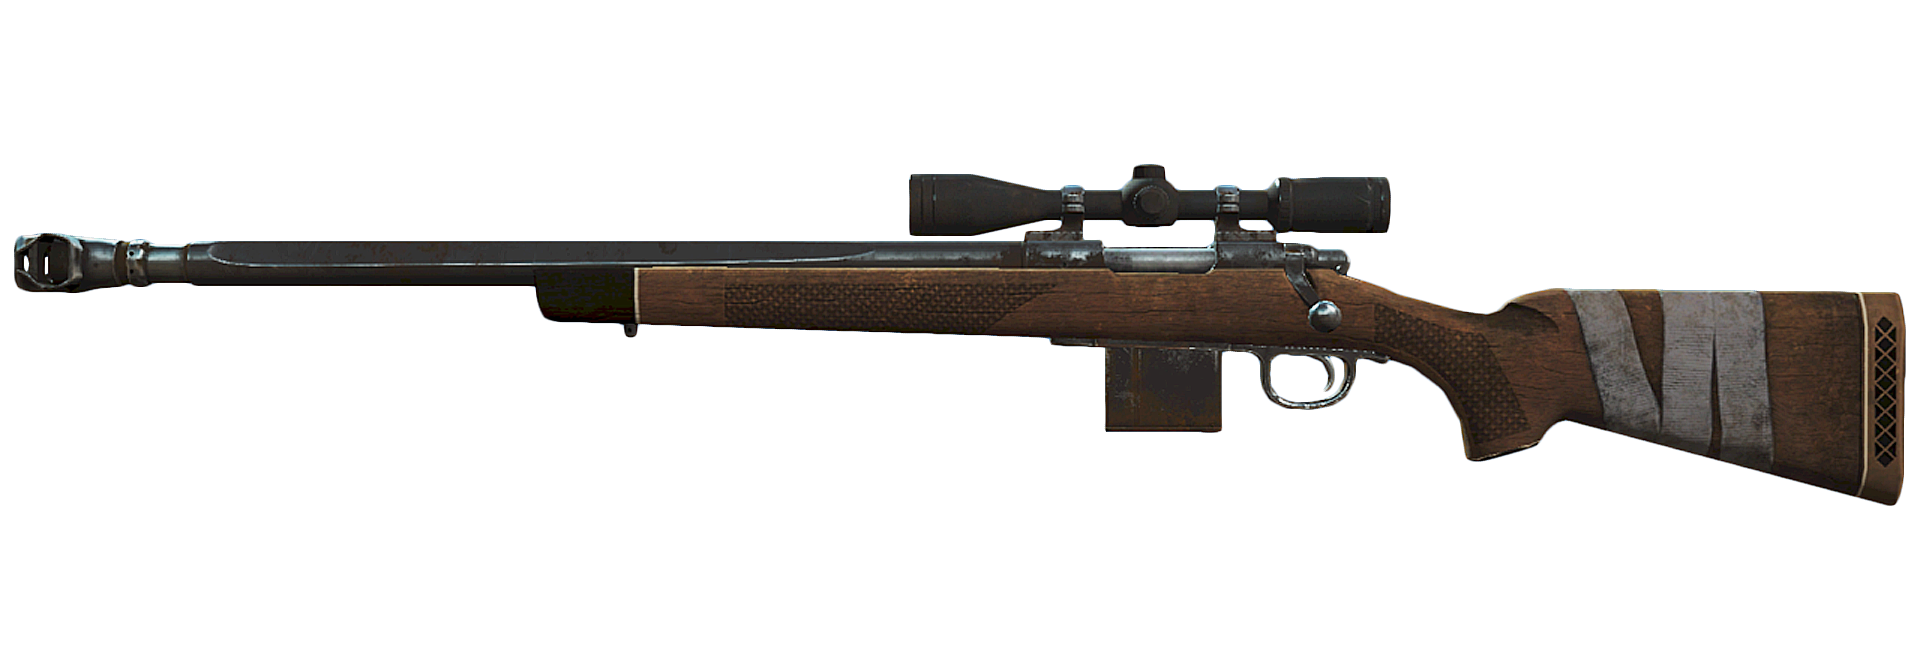 Hunting Rifle Png, png collections at sccpre.cat.